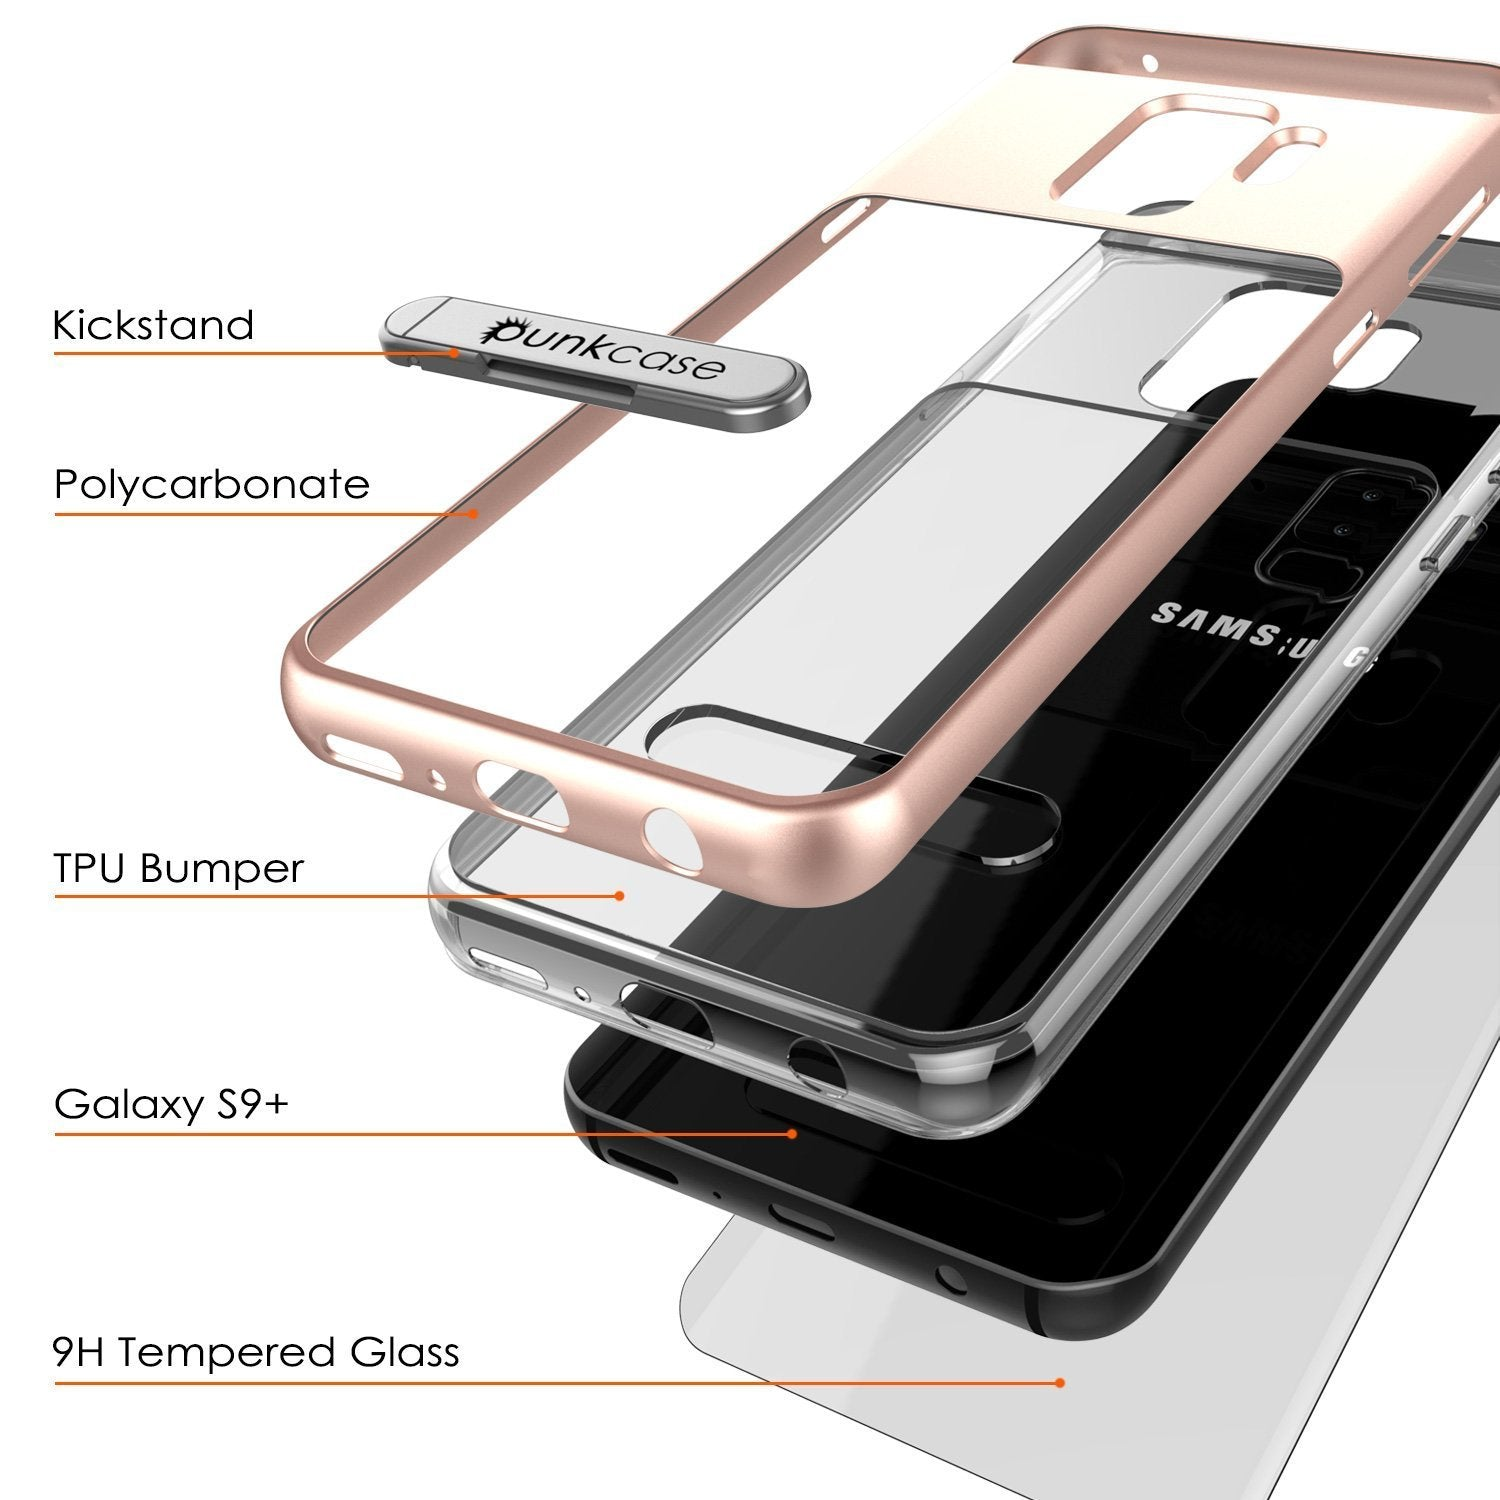 Galaxy S9+ Plus Case, PUNKcase [LUCID 3.0 Series] [Slim Fit] [Clear Back] Armor Cover w/ Integrated Kickstand, Anti-Shock System & PUNKSHIELD Screen Protector for Samsung Galaxy S9+ Plus [Rose Gold]